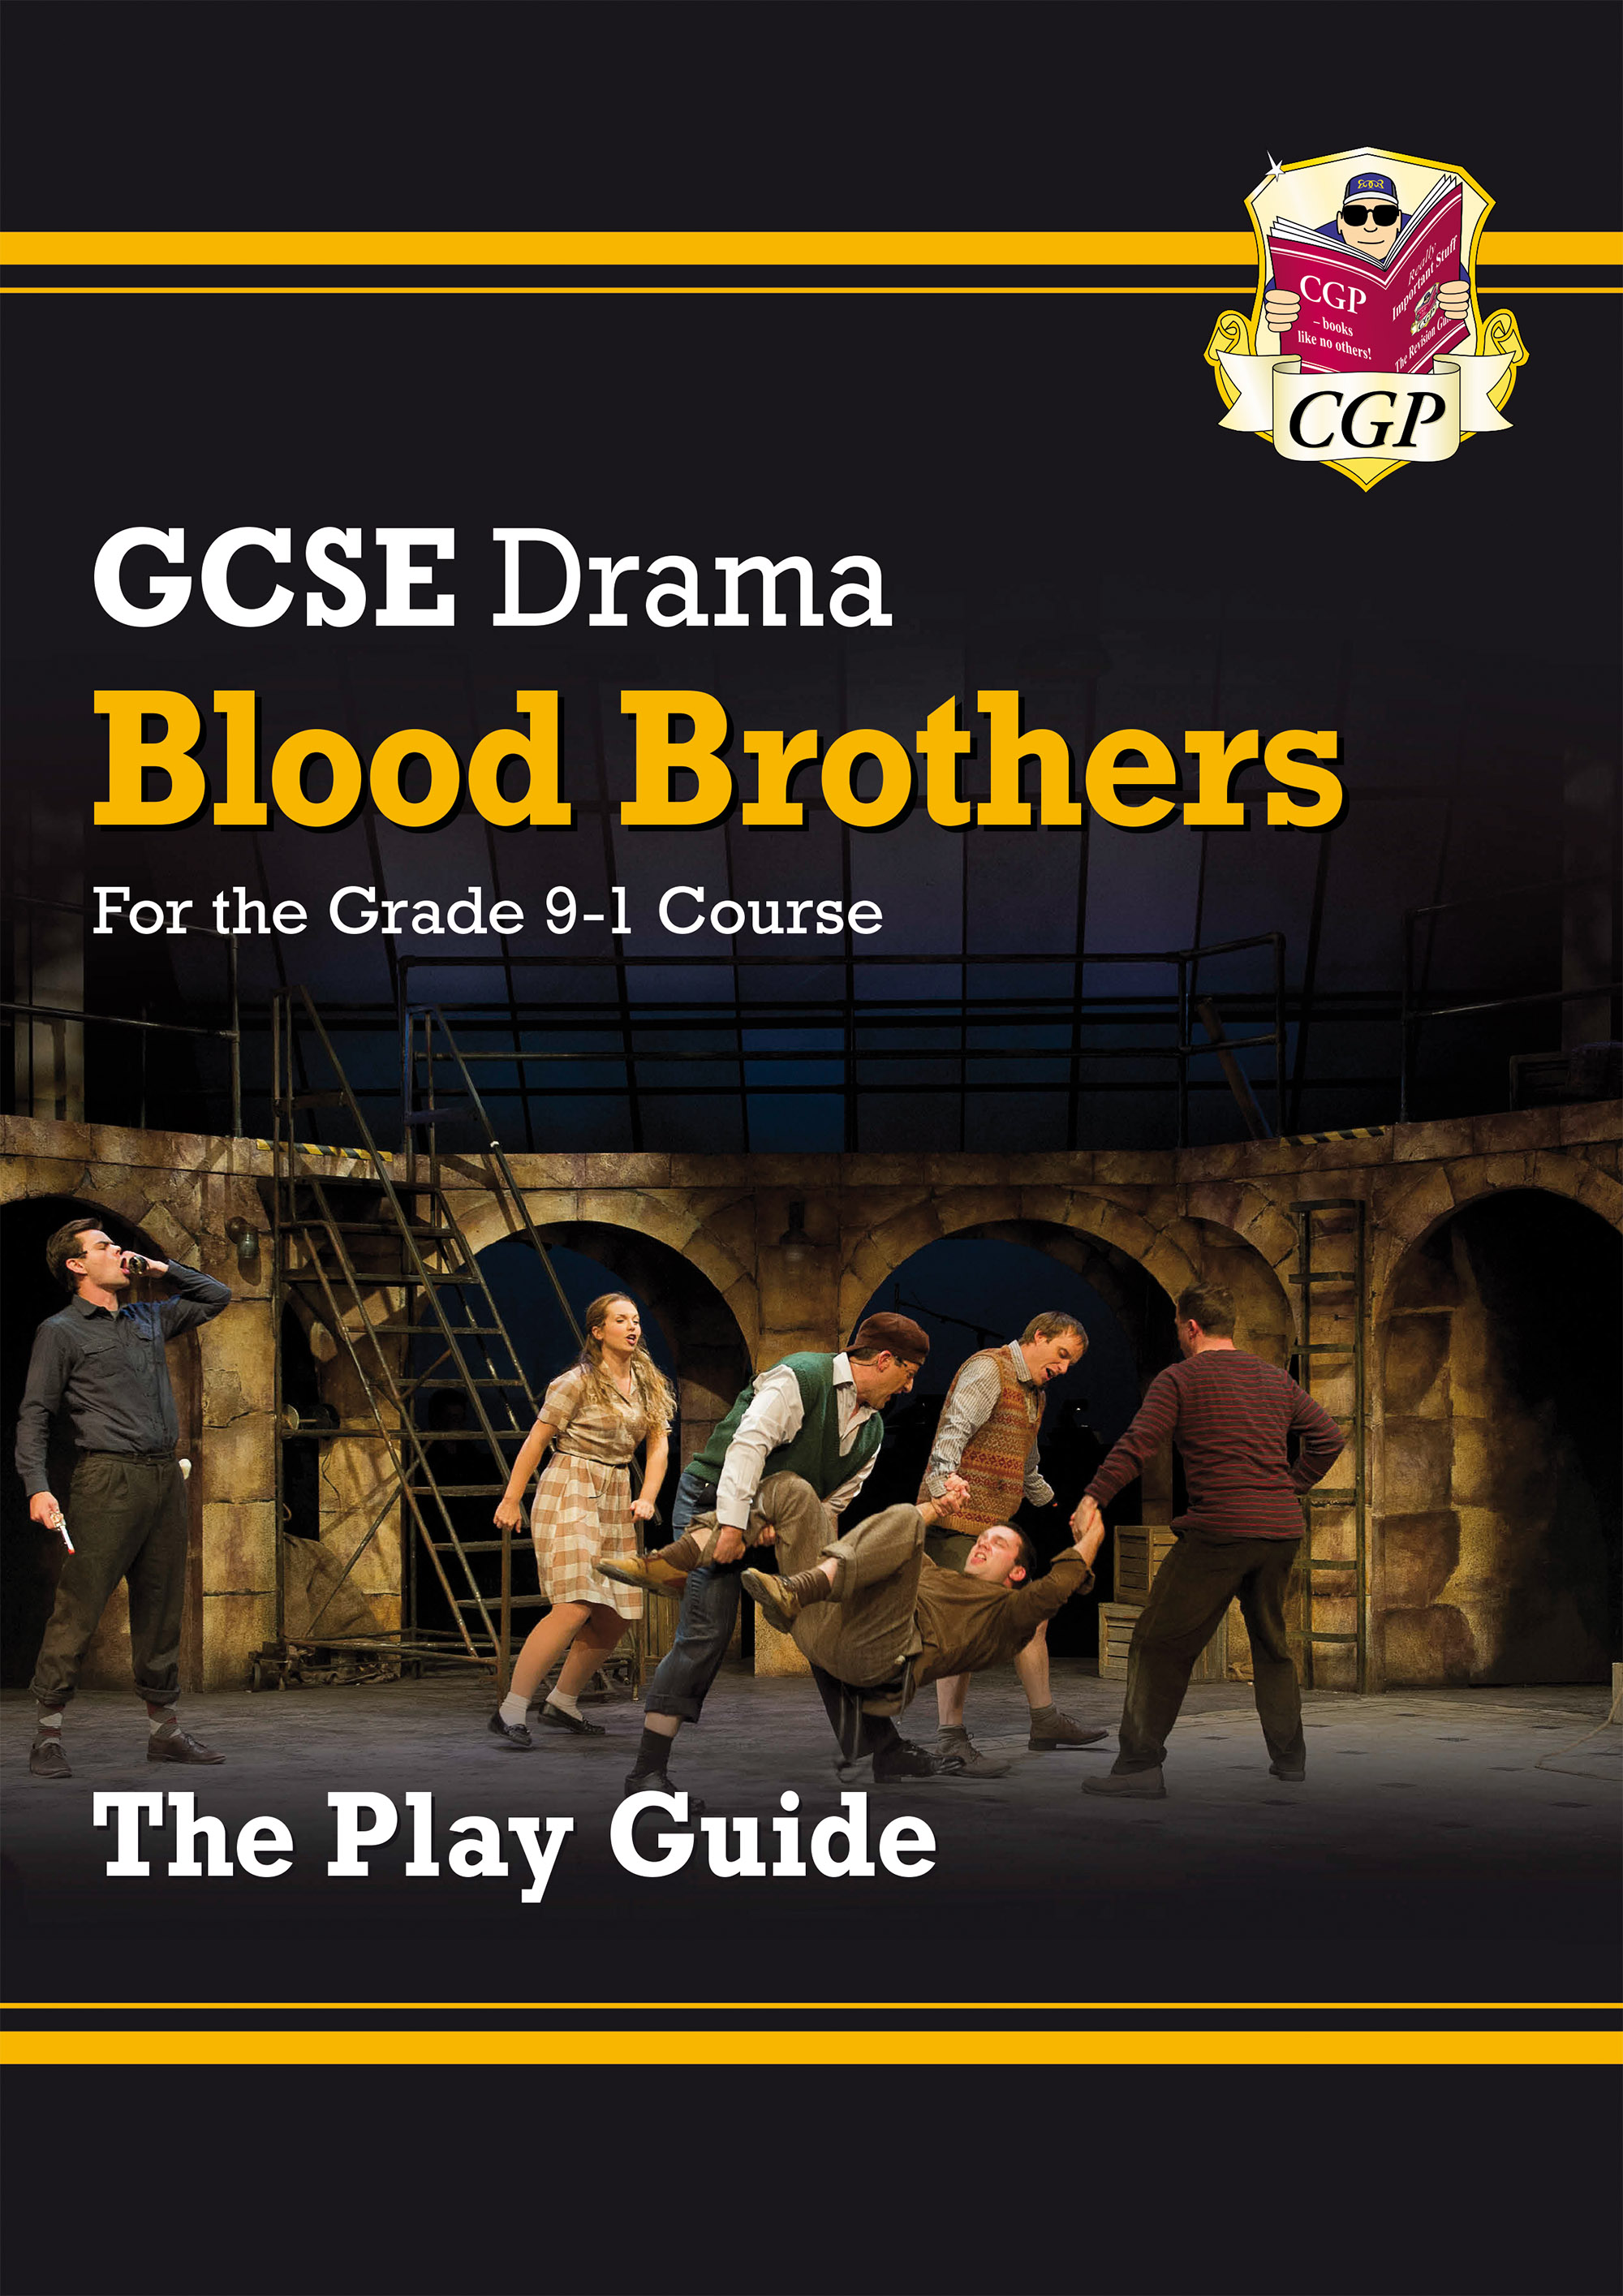 DMPBB41DK - New Grade 9-1 GCSE Drama Play Guide - Blood Brothers